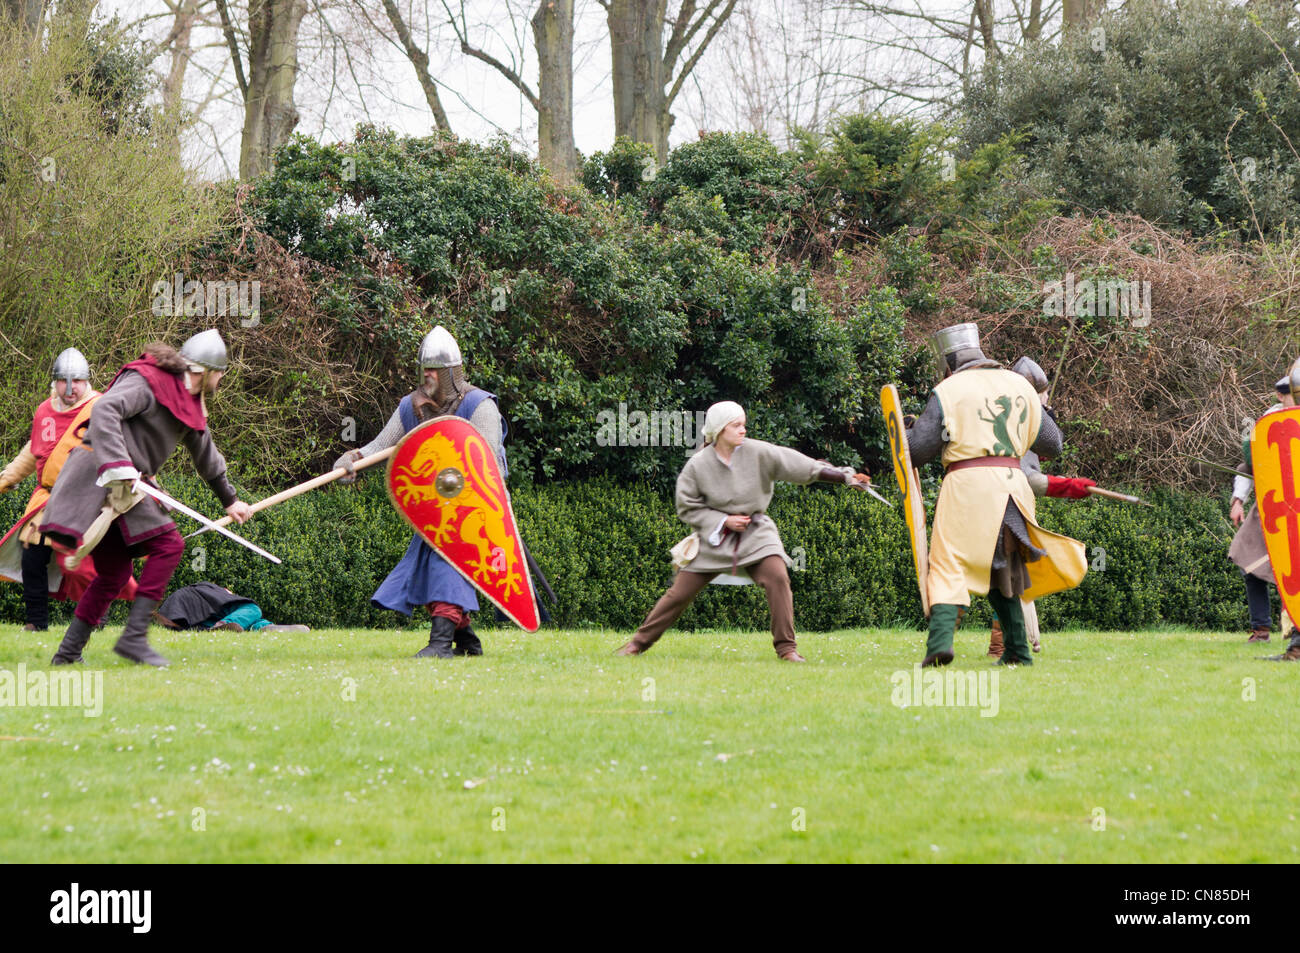 Medieval Polearm Stock Photos & Medieval Polearm Stock Images - Alamy